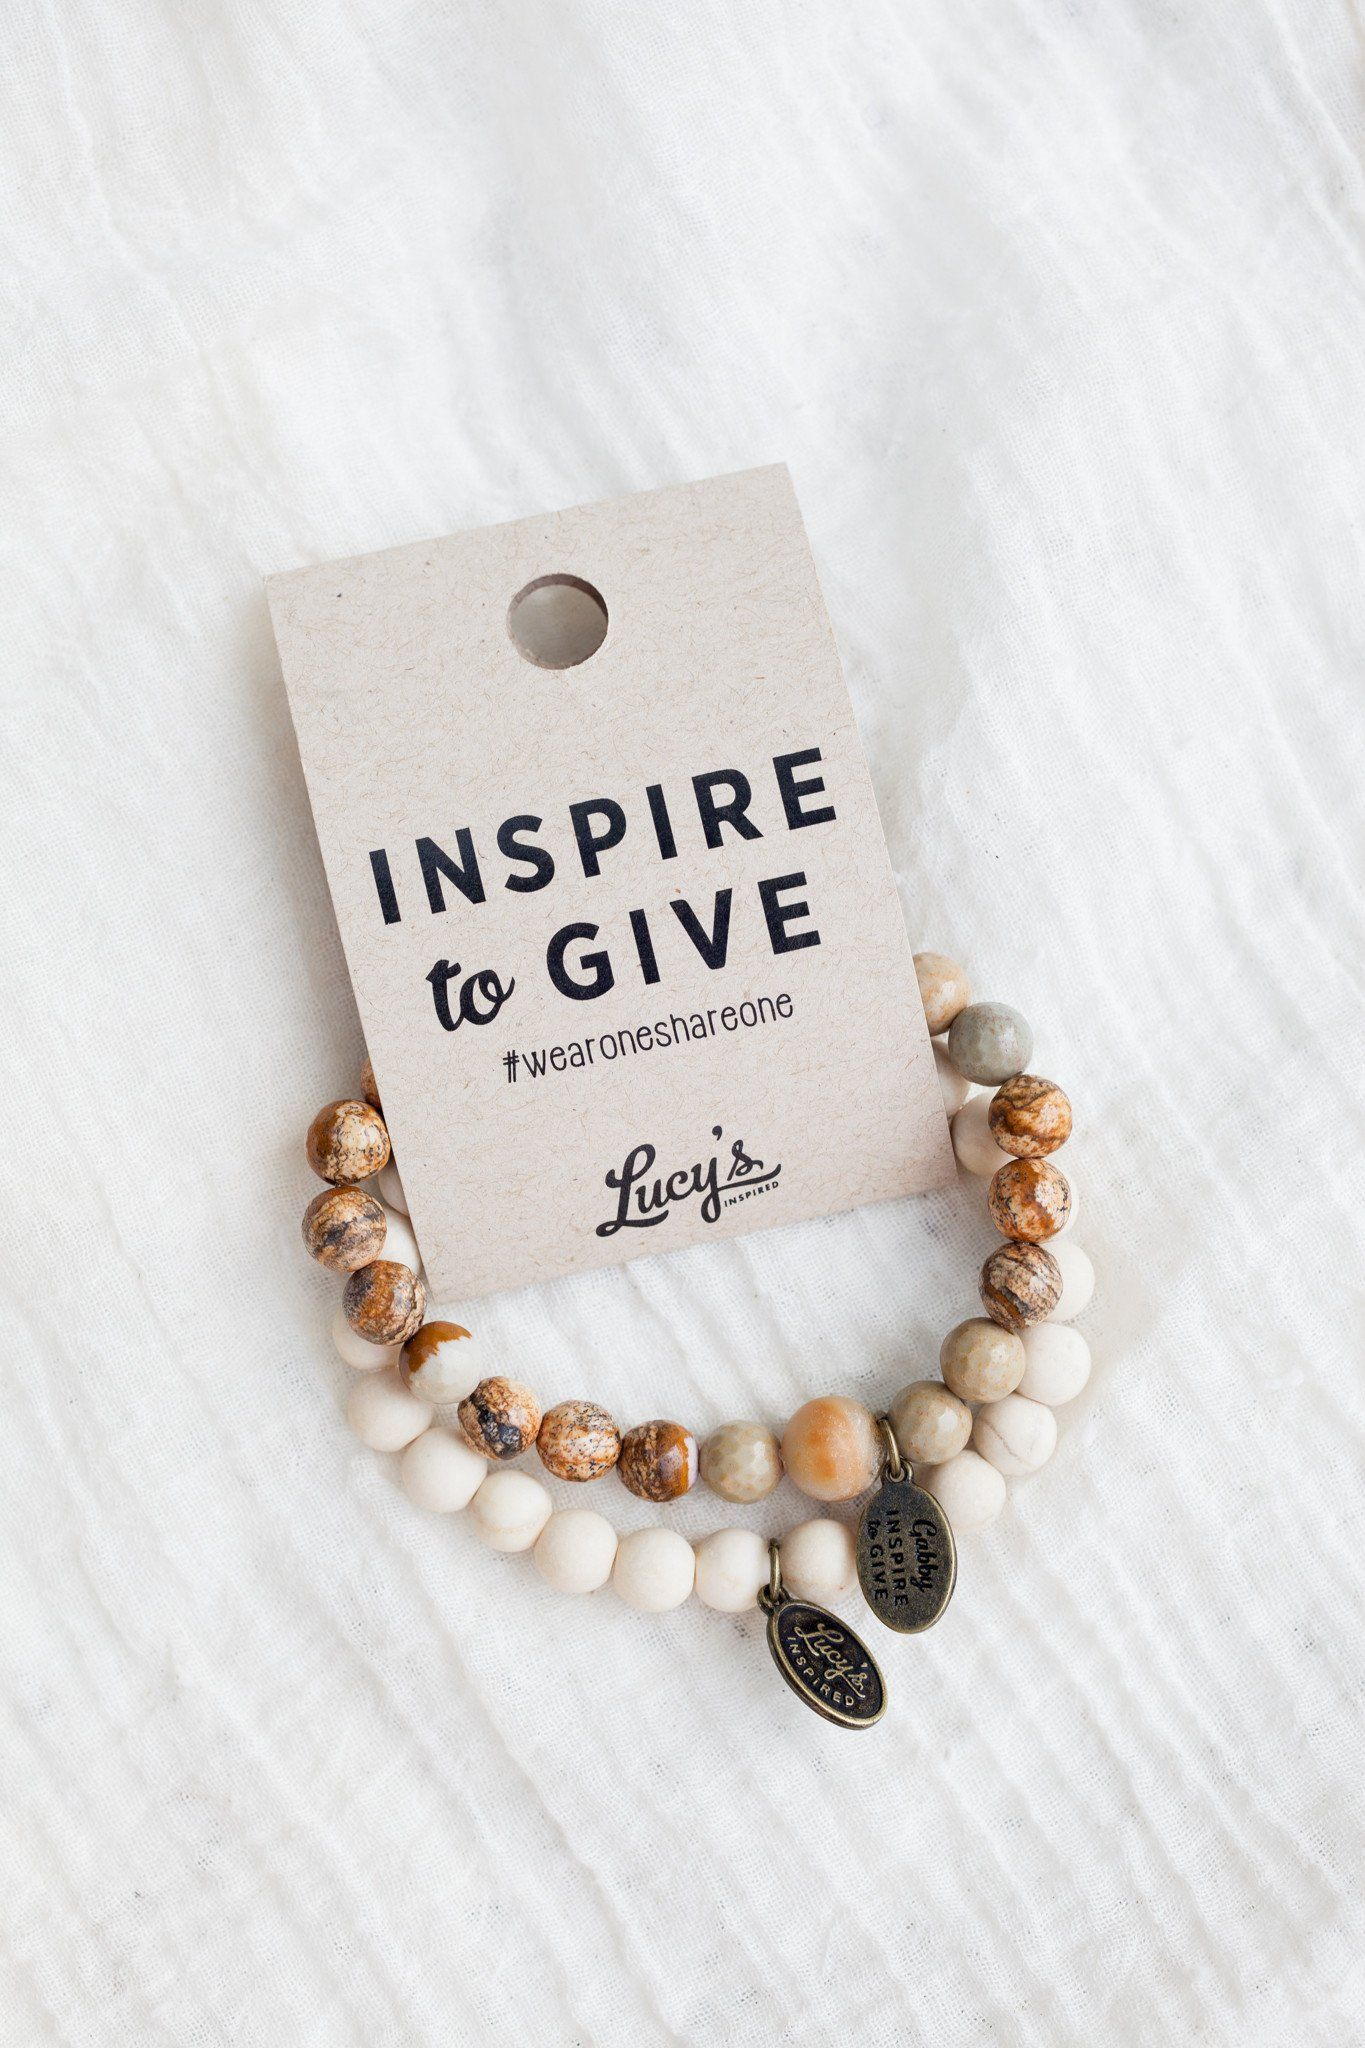 """Our Inspire to Give bracelet is two bracelets packaged together. Both bracelets are composed of small, varying colored beads. We have created these beautiful bracelets in honor of Gabriella Maria Menotti, affectionately called """"Gab Gab"""", who went to be with the Lord on December 20th, 2015 after a lifelong battle against a childhood disease. Her relentless dedication, paired with the support of her family, friends and caretakers, was an inspiration to everyone. Even though her time here was short"""